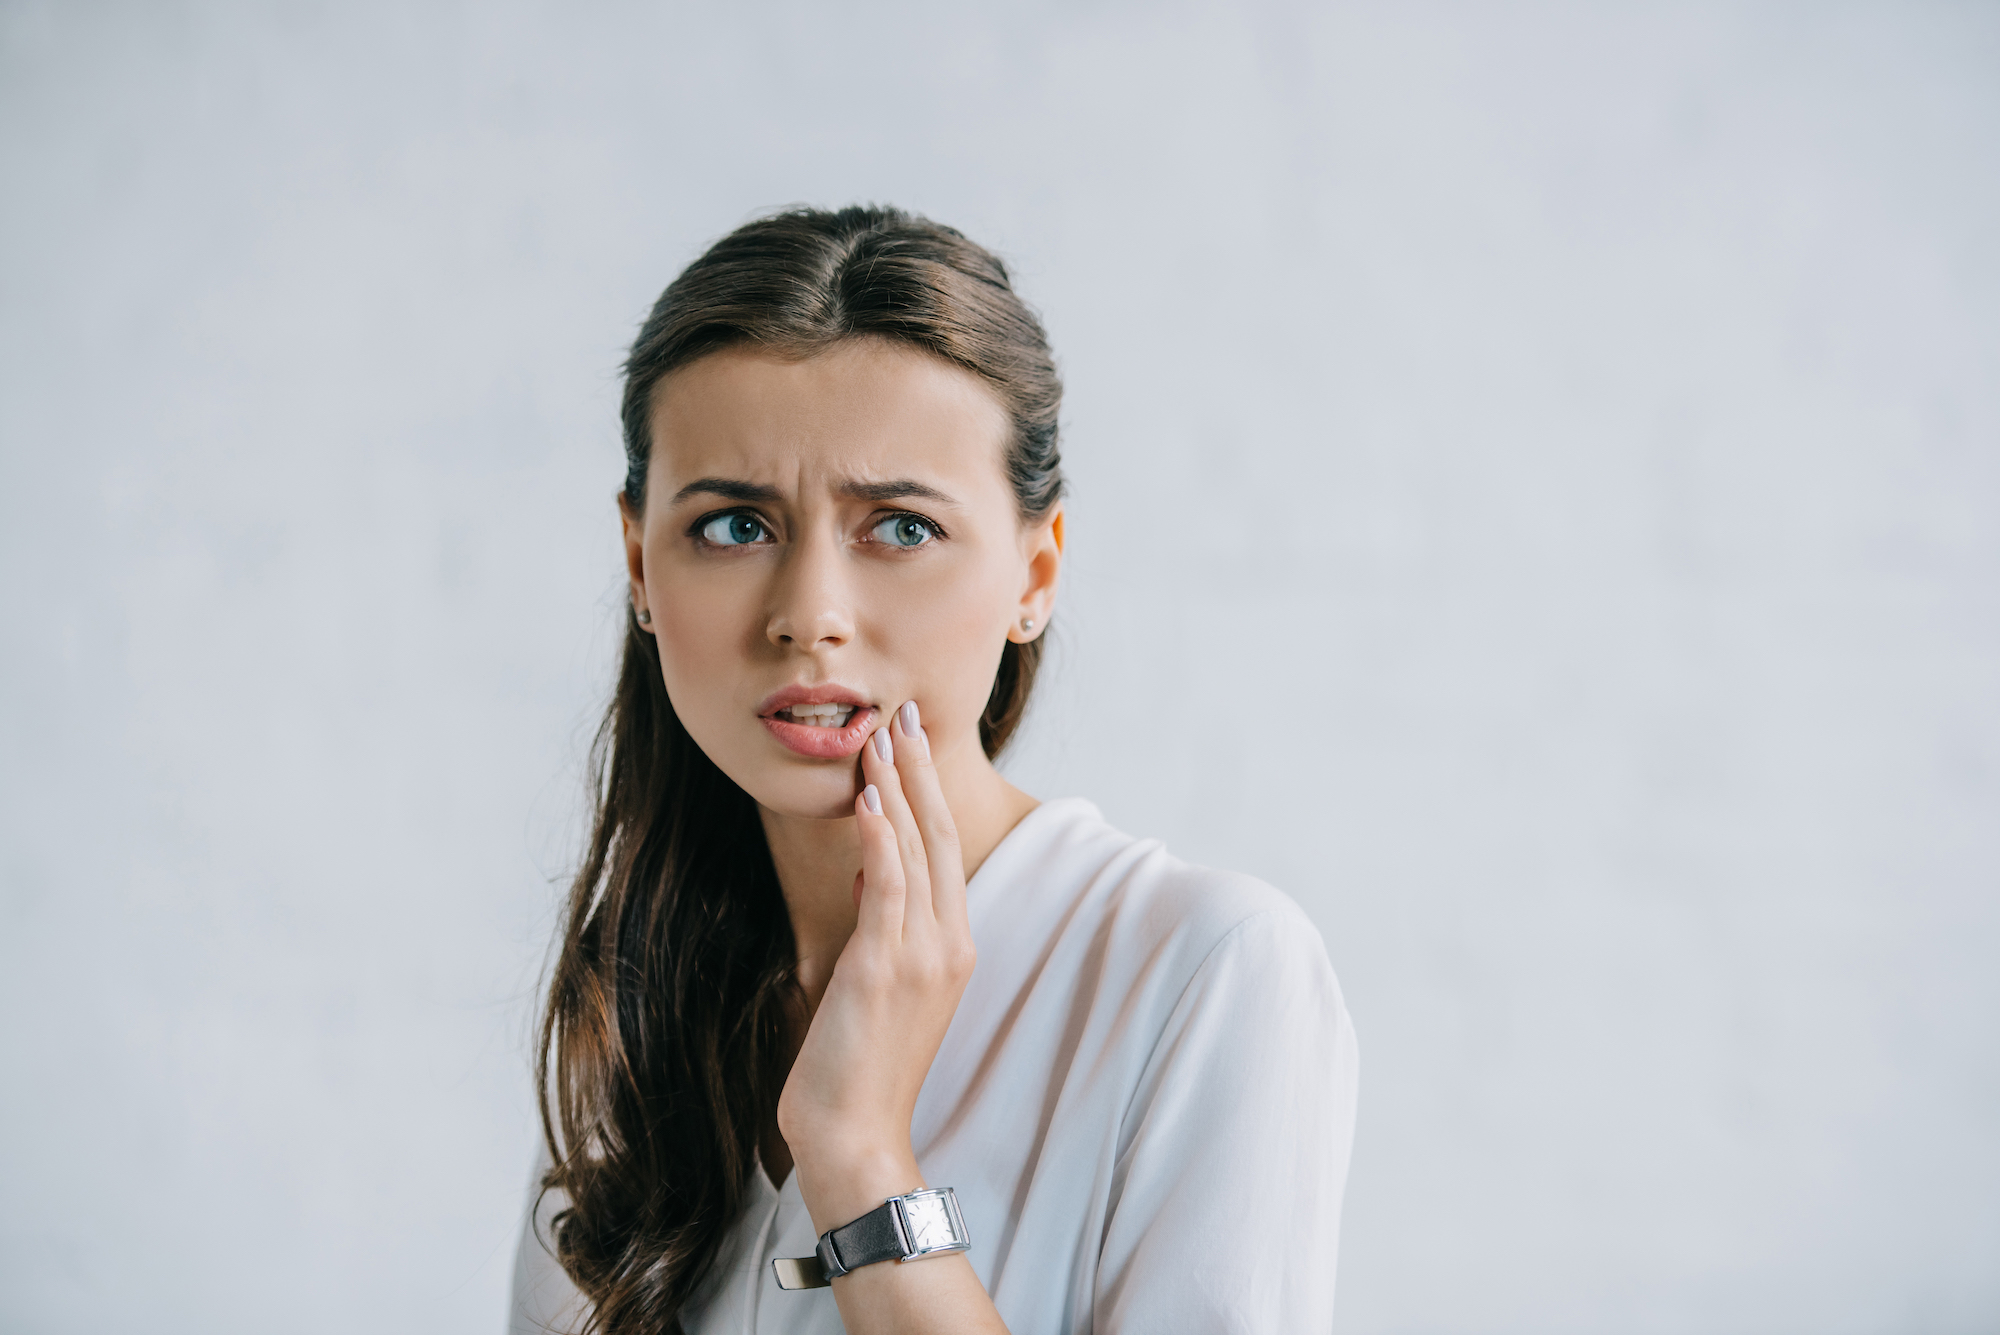 attractive young woman suffering from toothache and looking away